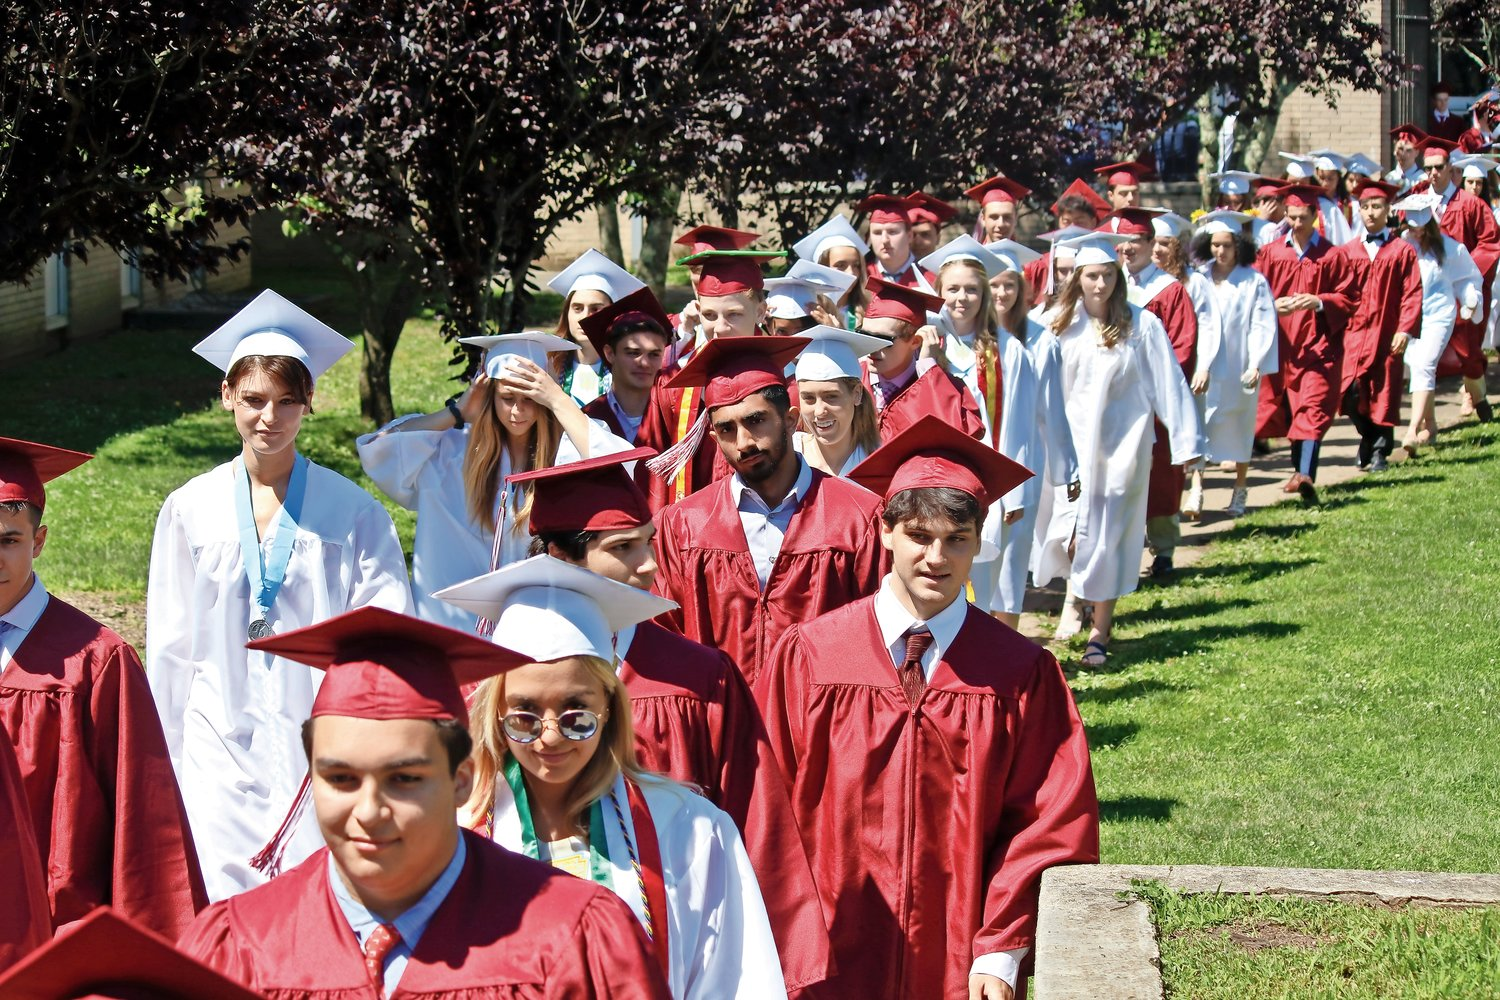 The North Shore High School class of 2019 filed in from the courtyard to begin commencement exercises.